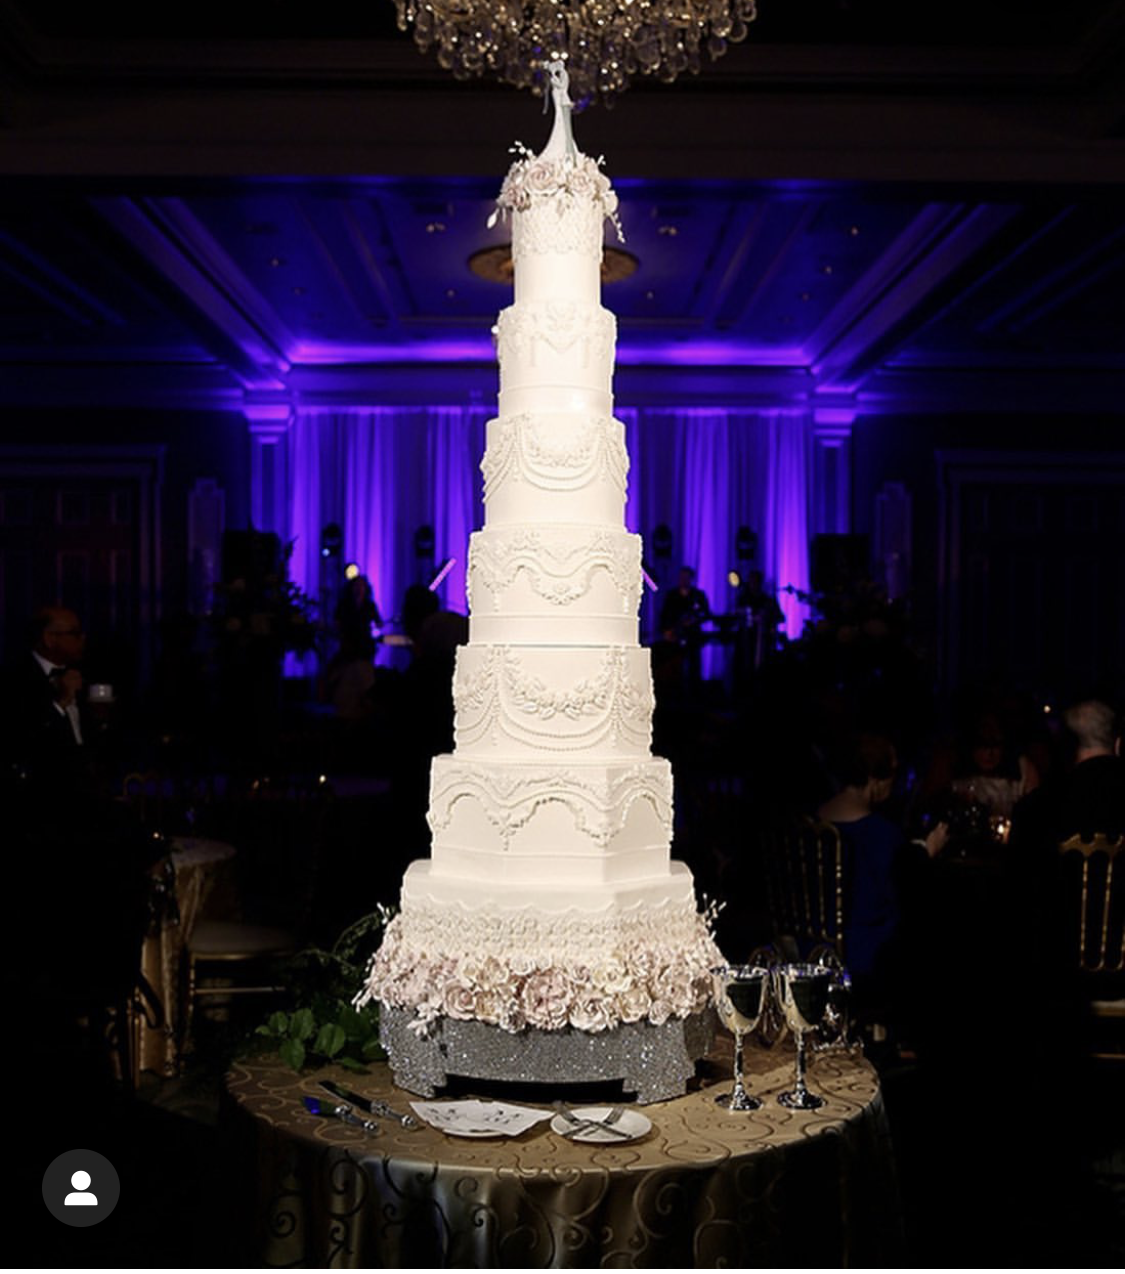 Wedding cake 3.png